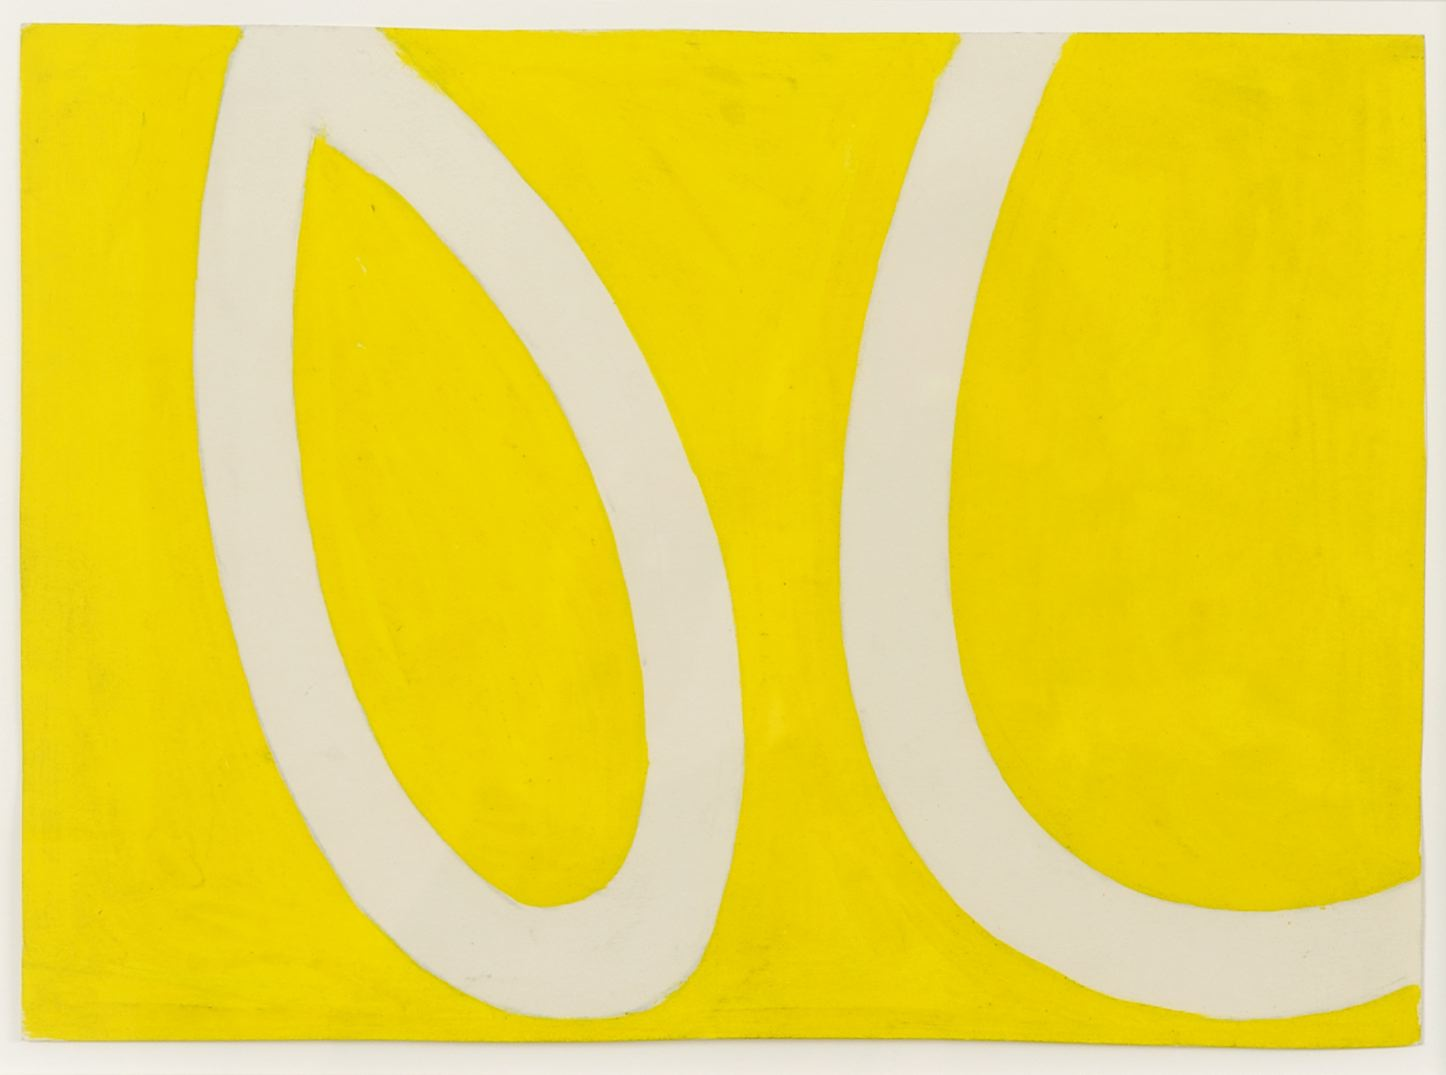 Ellsworth Kelly White Bands on Yellow 1959 graphite and oil on paper 6 1/4 x 11 3/8 inches